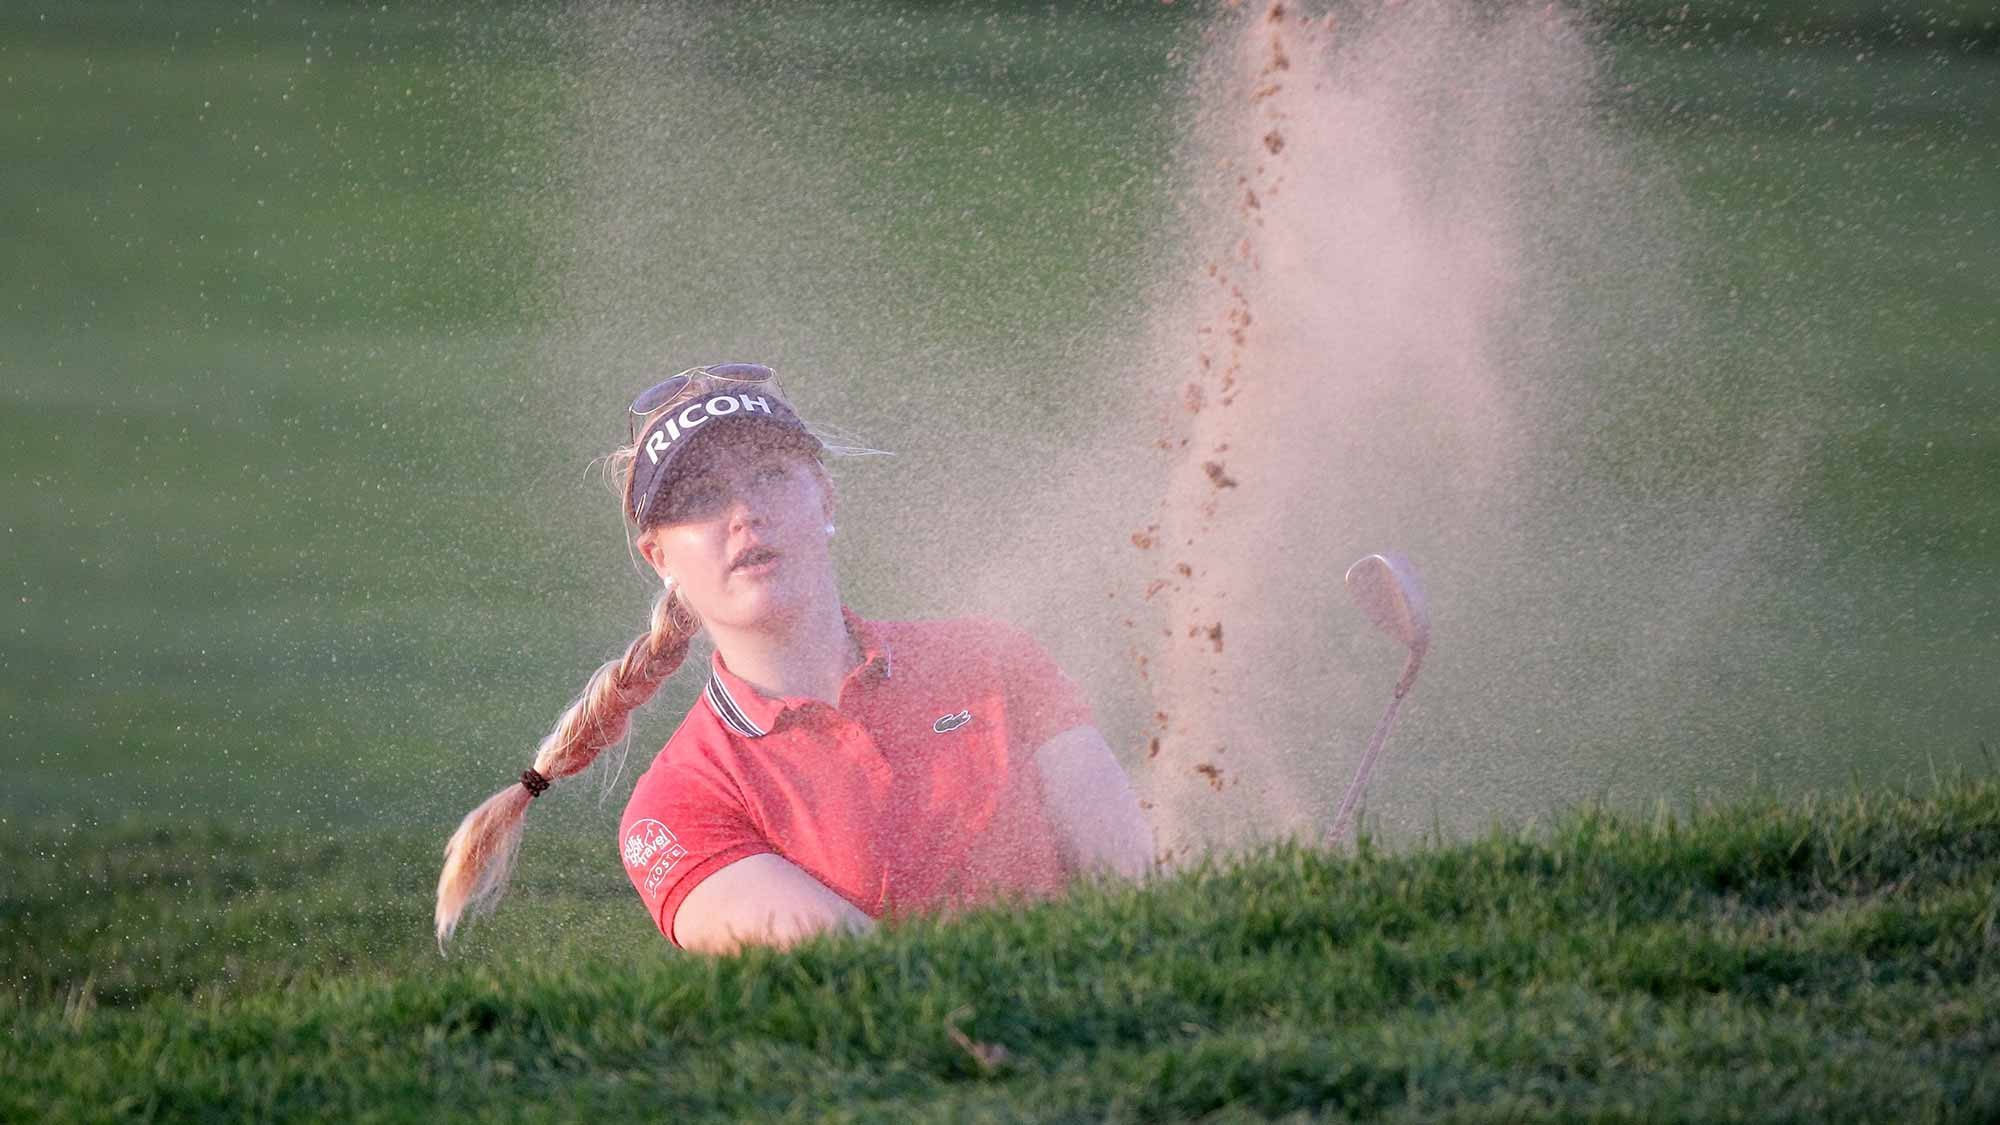 Charley Hull of England plays a bunker shot on the 18th hole during round two of the LPGA KEB Hana Bank Championship